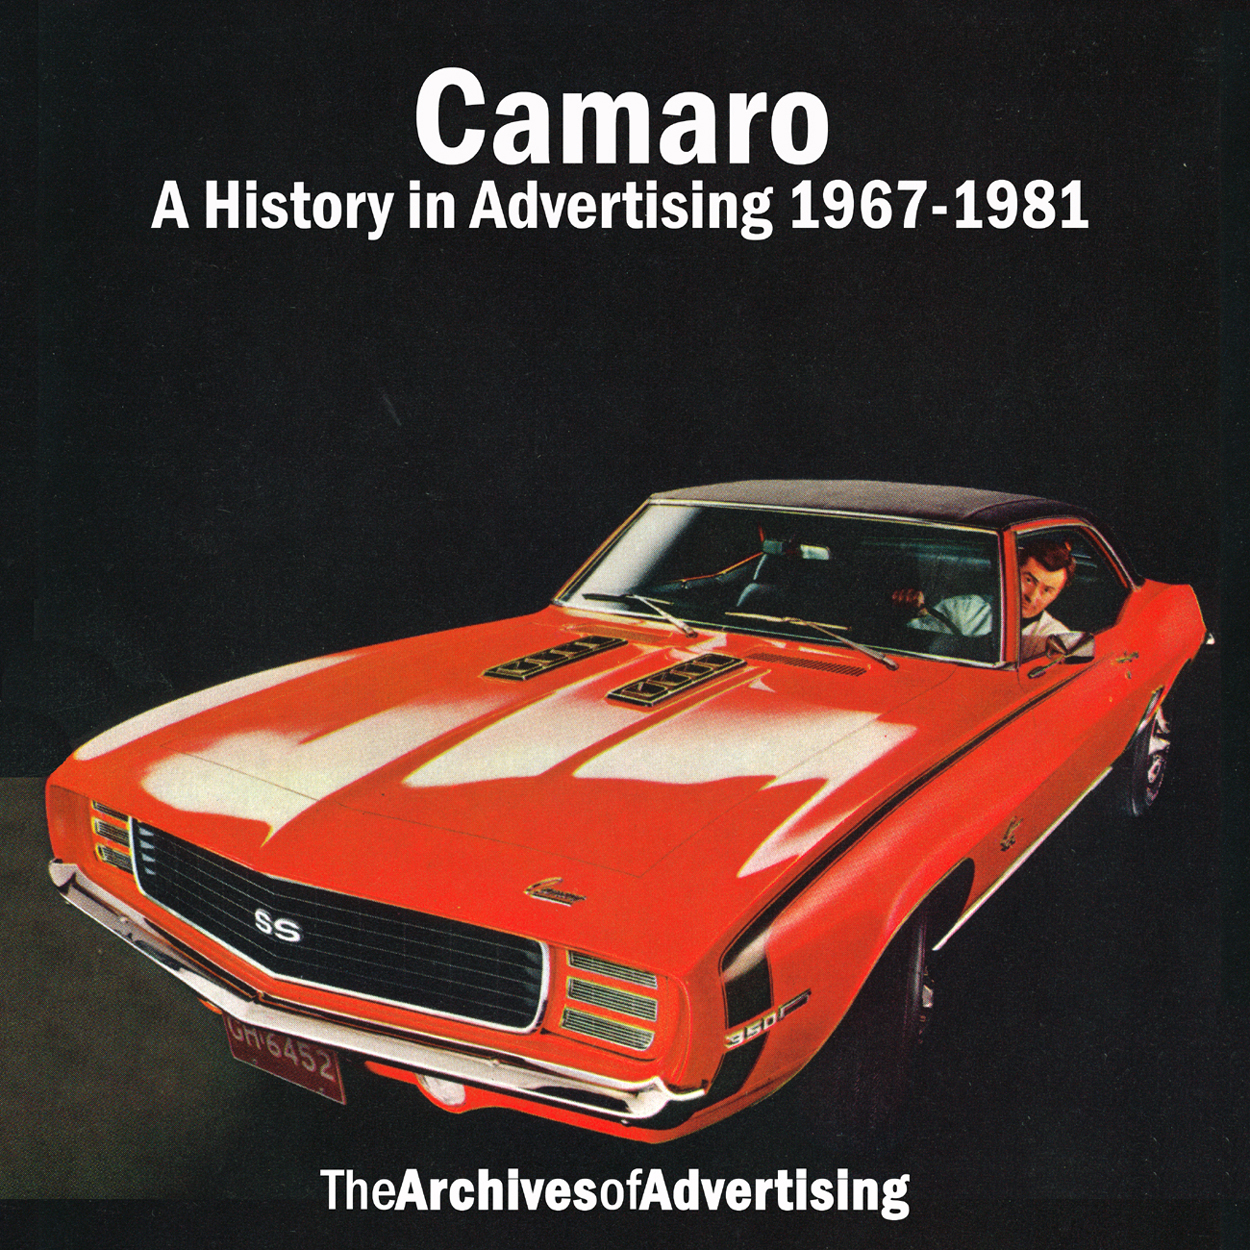 1967 1968 1969 1970 1971 1972 1973 1973 1974 1975 1976-1981 Camaro ad CD 170 ads